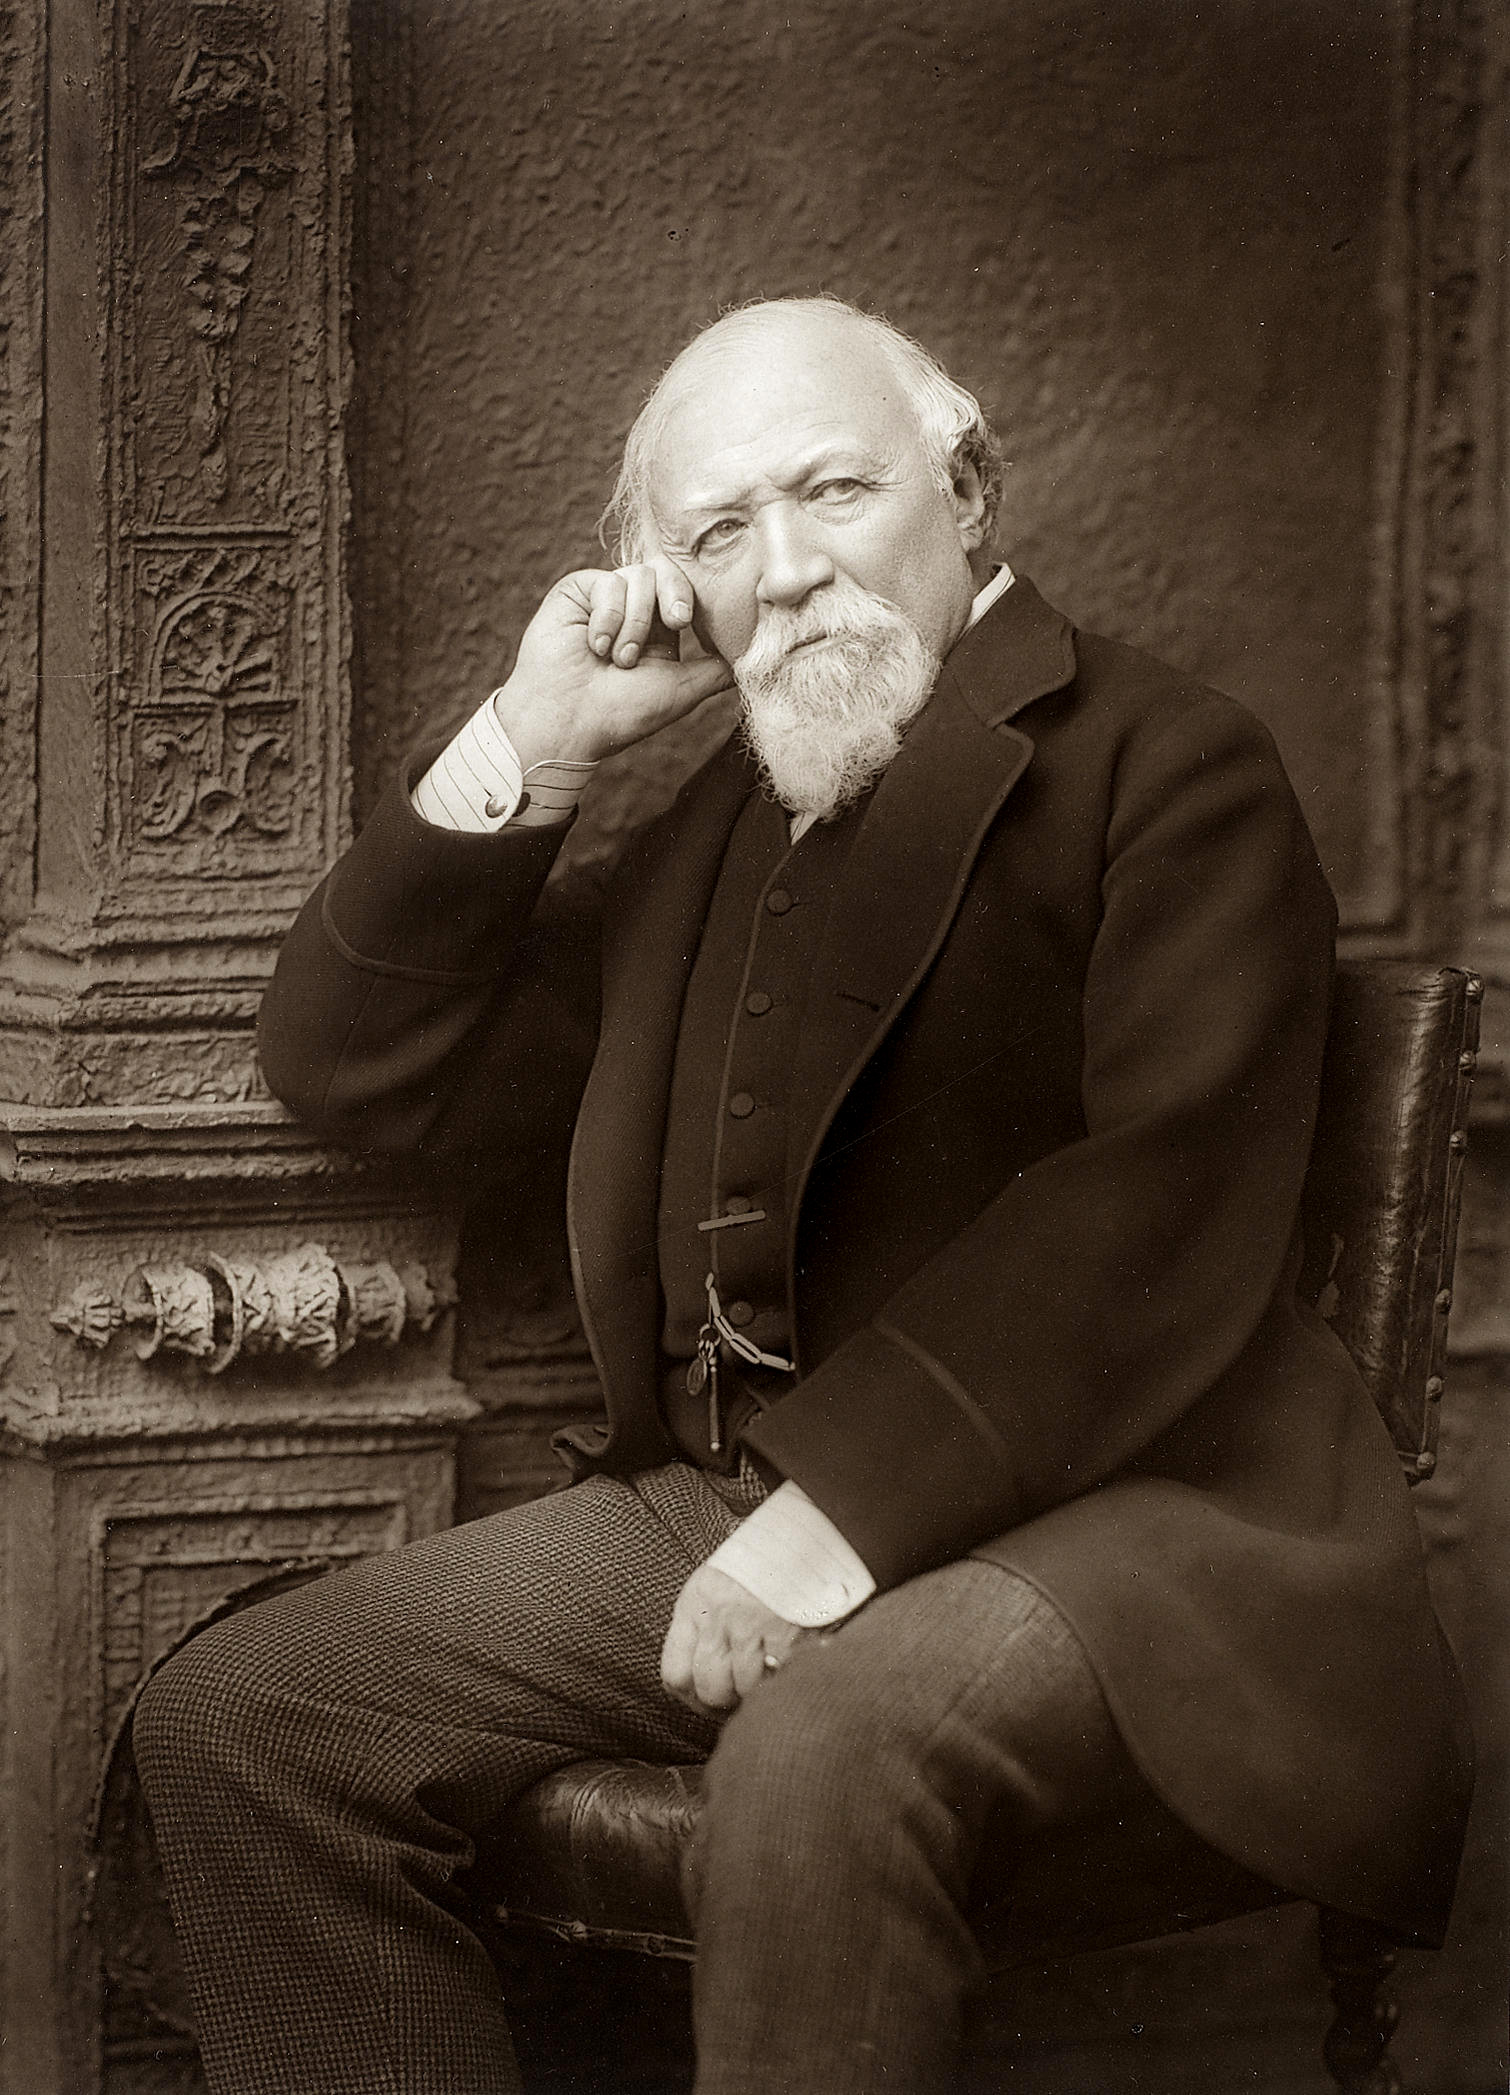 Portrait of Robert Browning